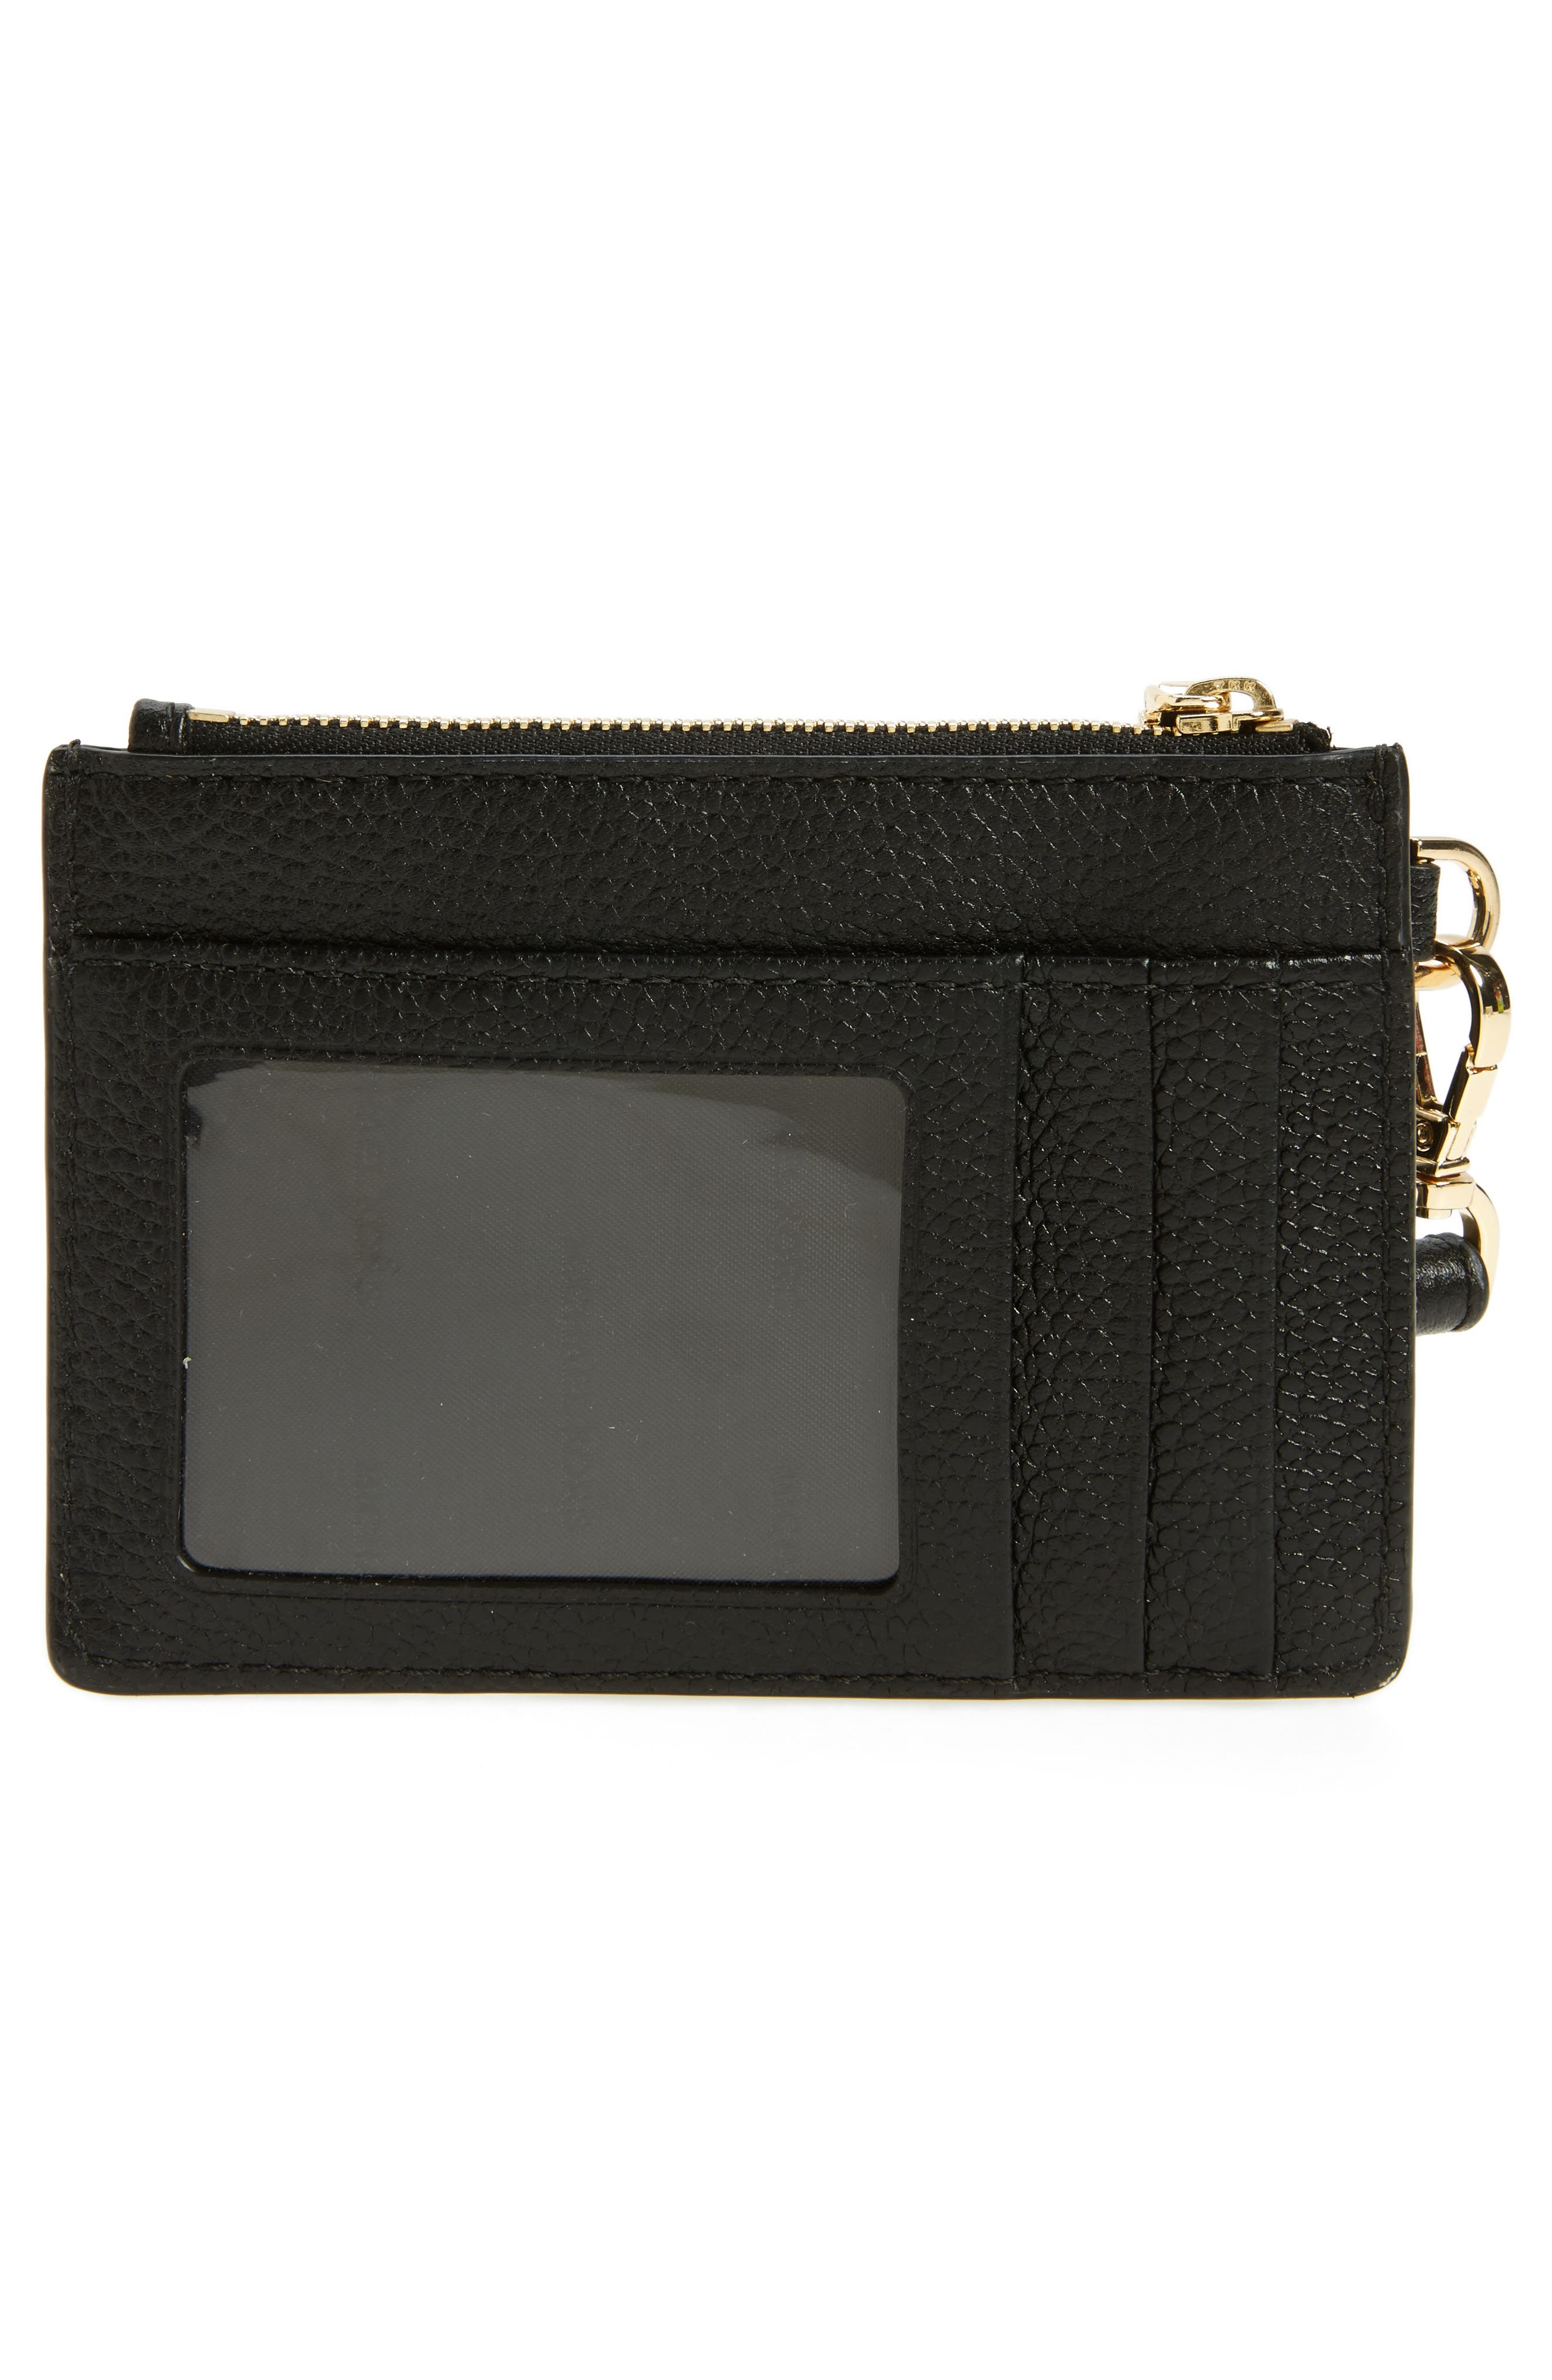 Small Mercer Leather RFID Coin Purse,                             Alternate thumbnail 4, color,                             001